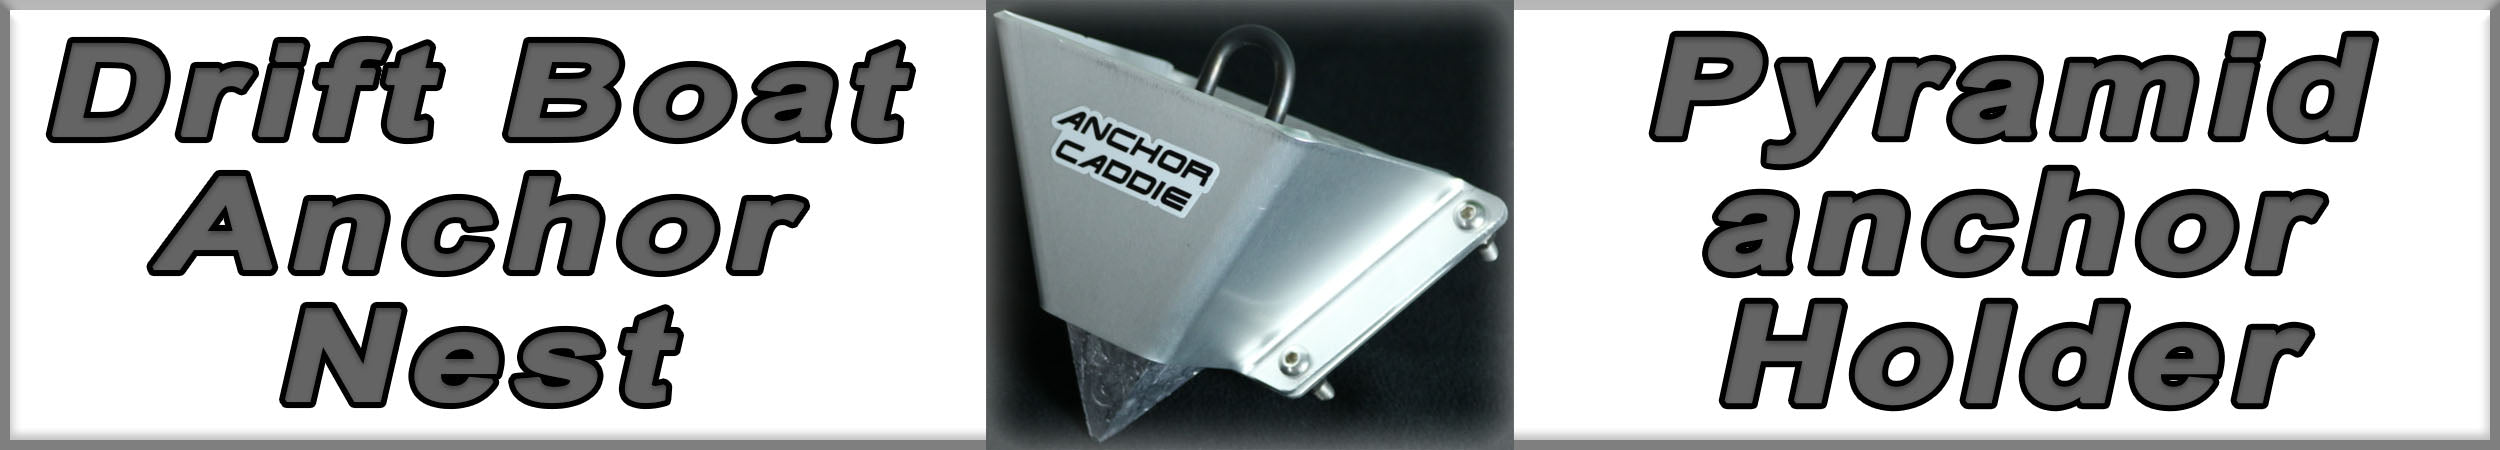 Best Drift Boat Pyramid Anchor Holder or Anchor Nest